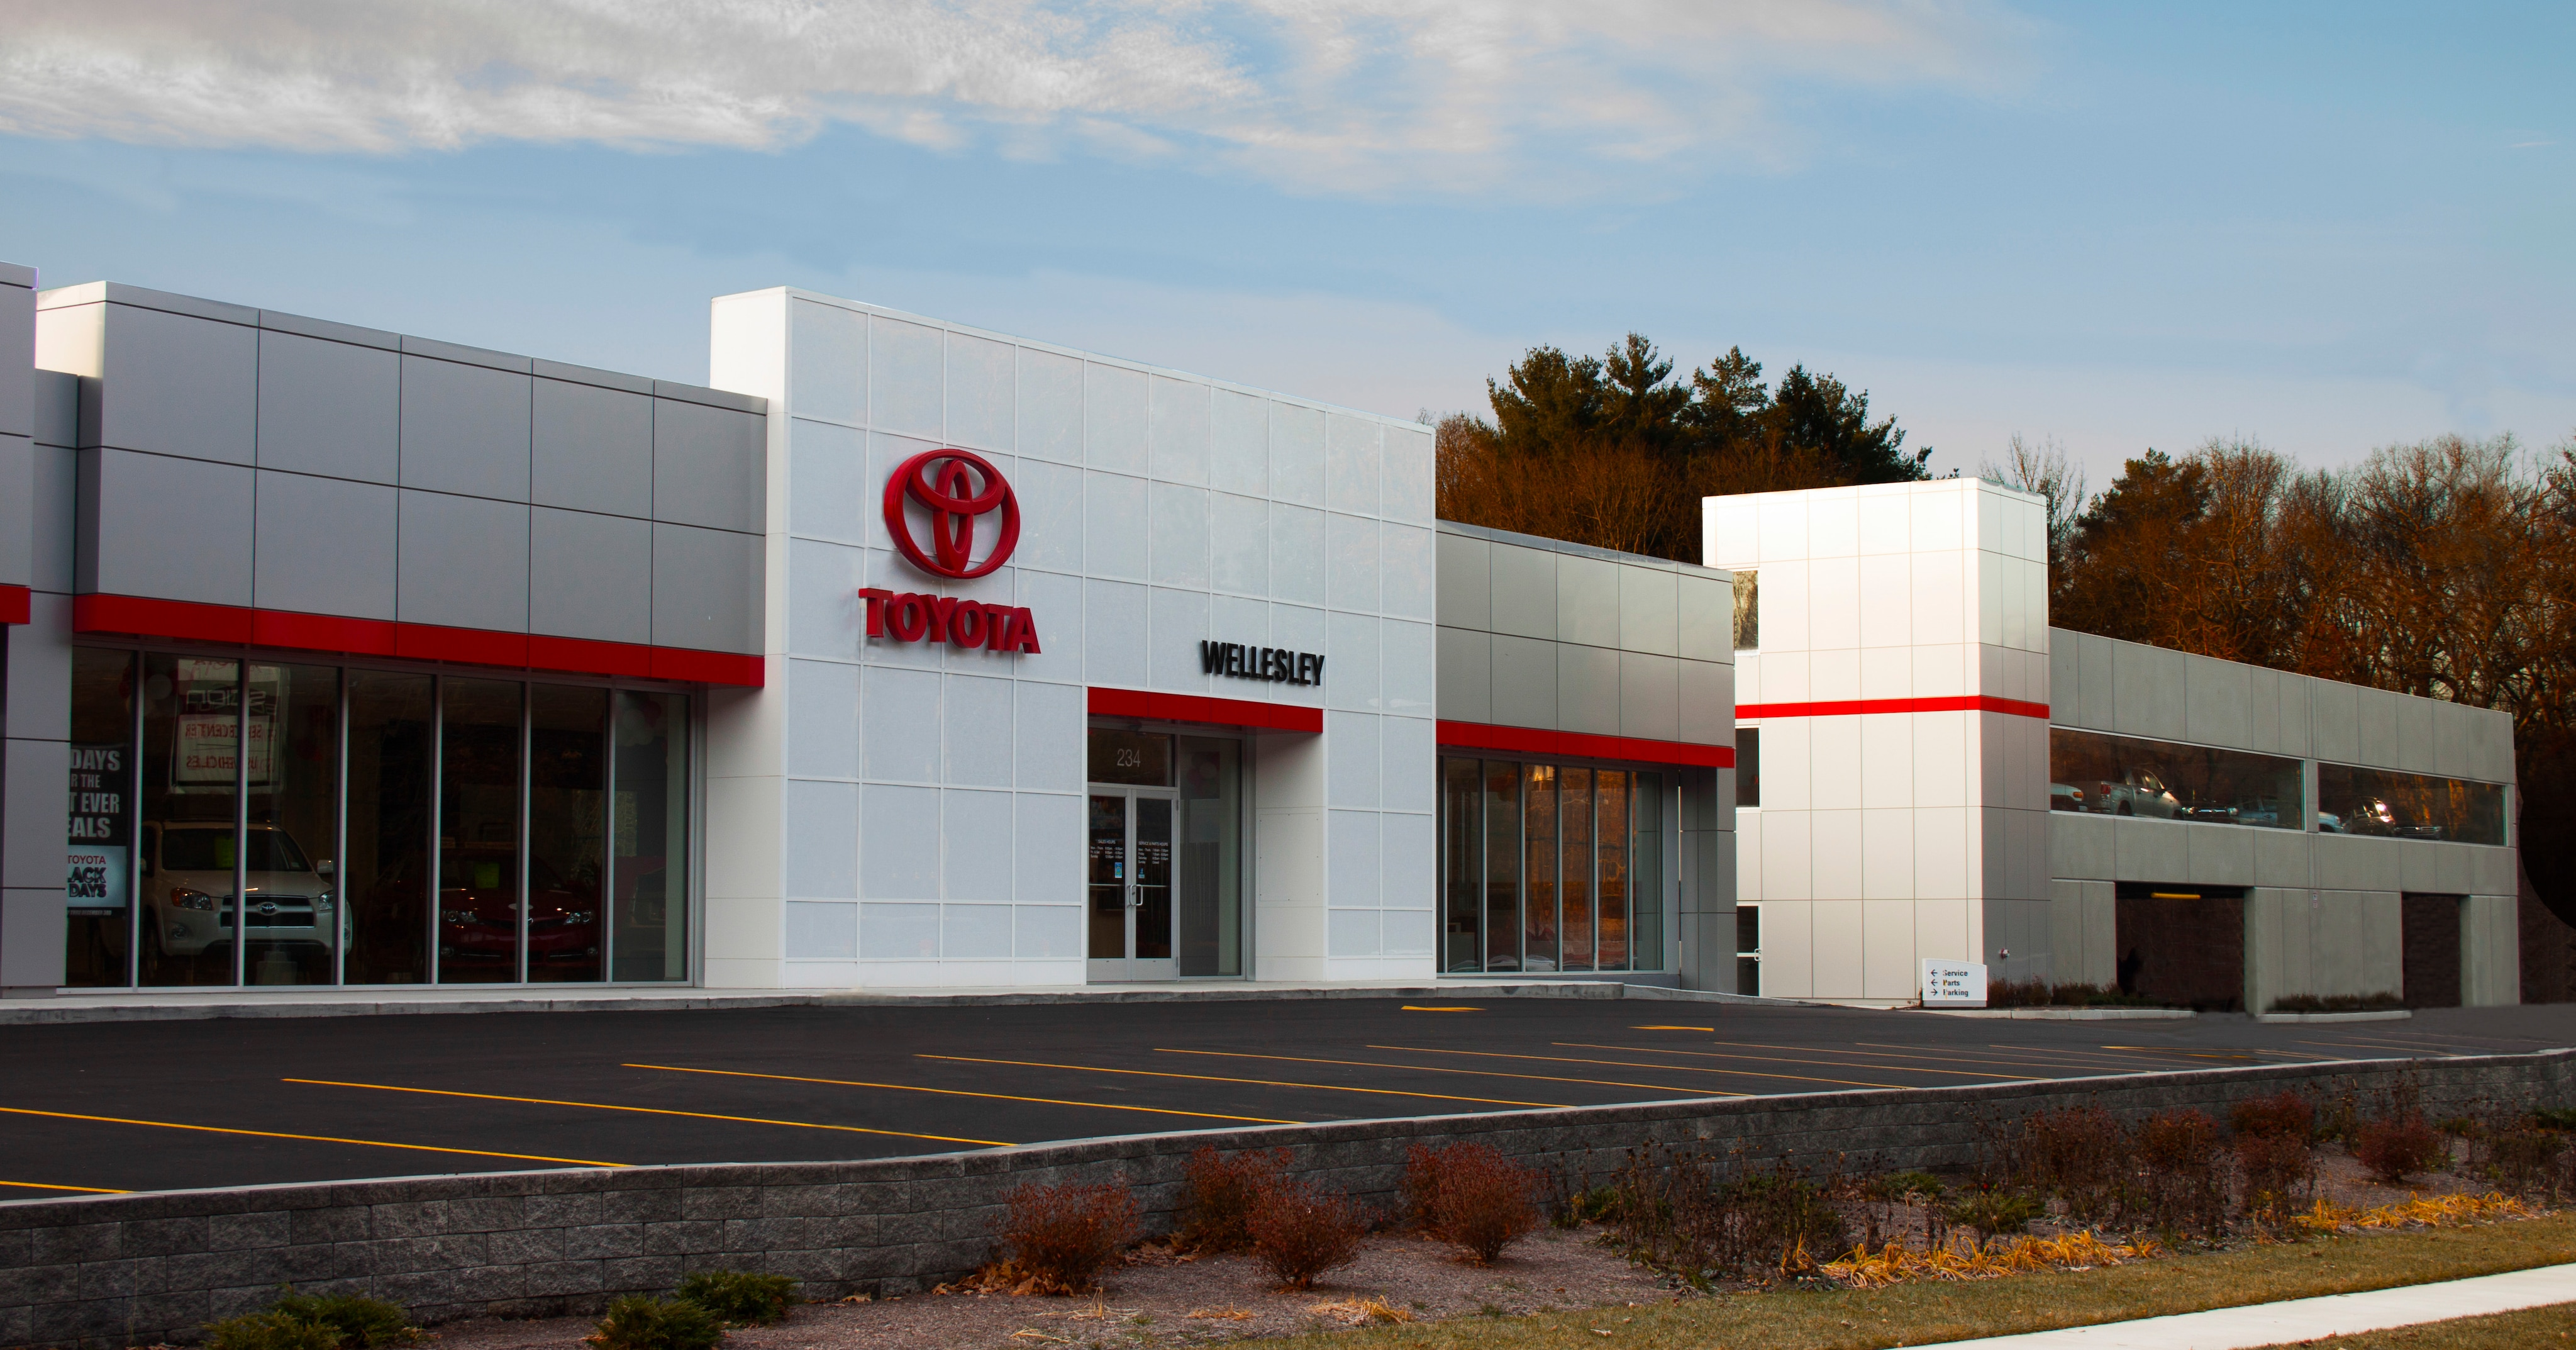 Wellesley toyota the first leed certified dealership in boston what makes wellesley toyota leed certified becoming the first leed certified automotive dealership in new england xflitez Choice Image